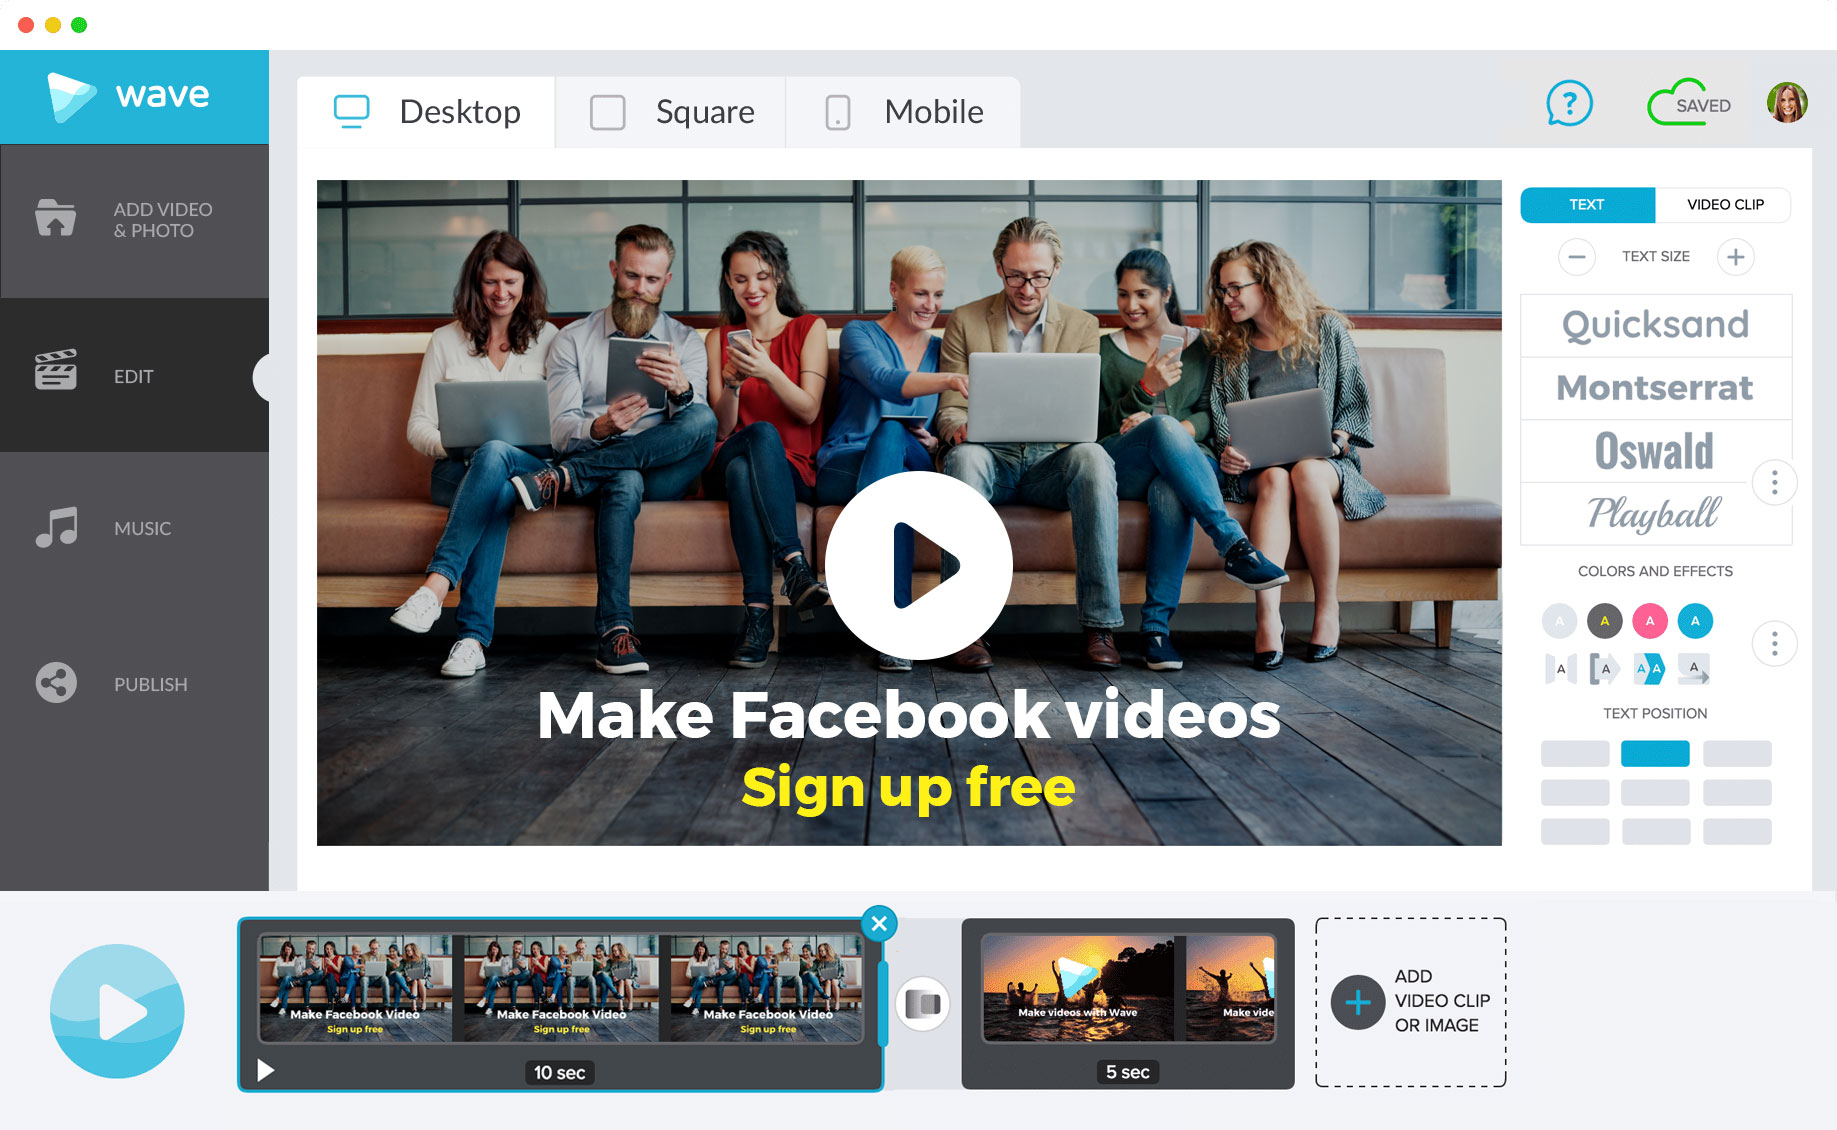 Learn how to create a Facebook video in Wave.video, an online video maker